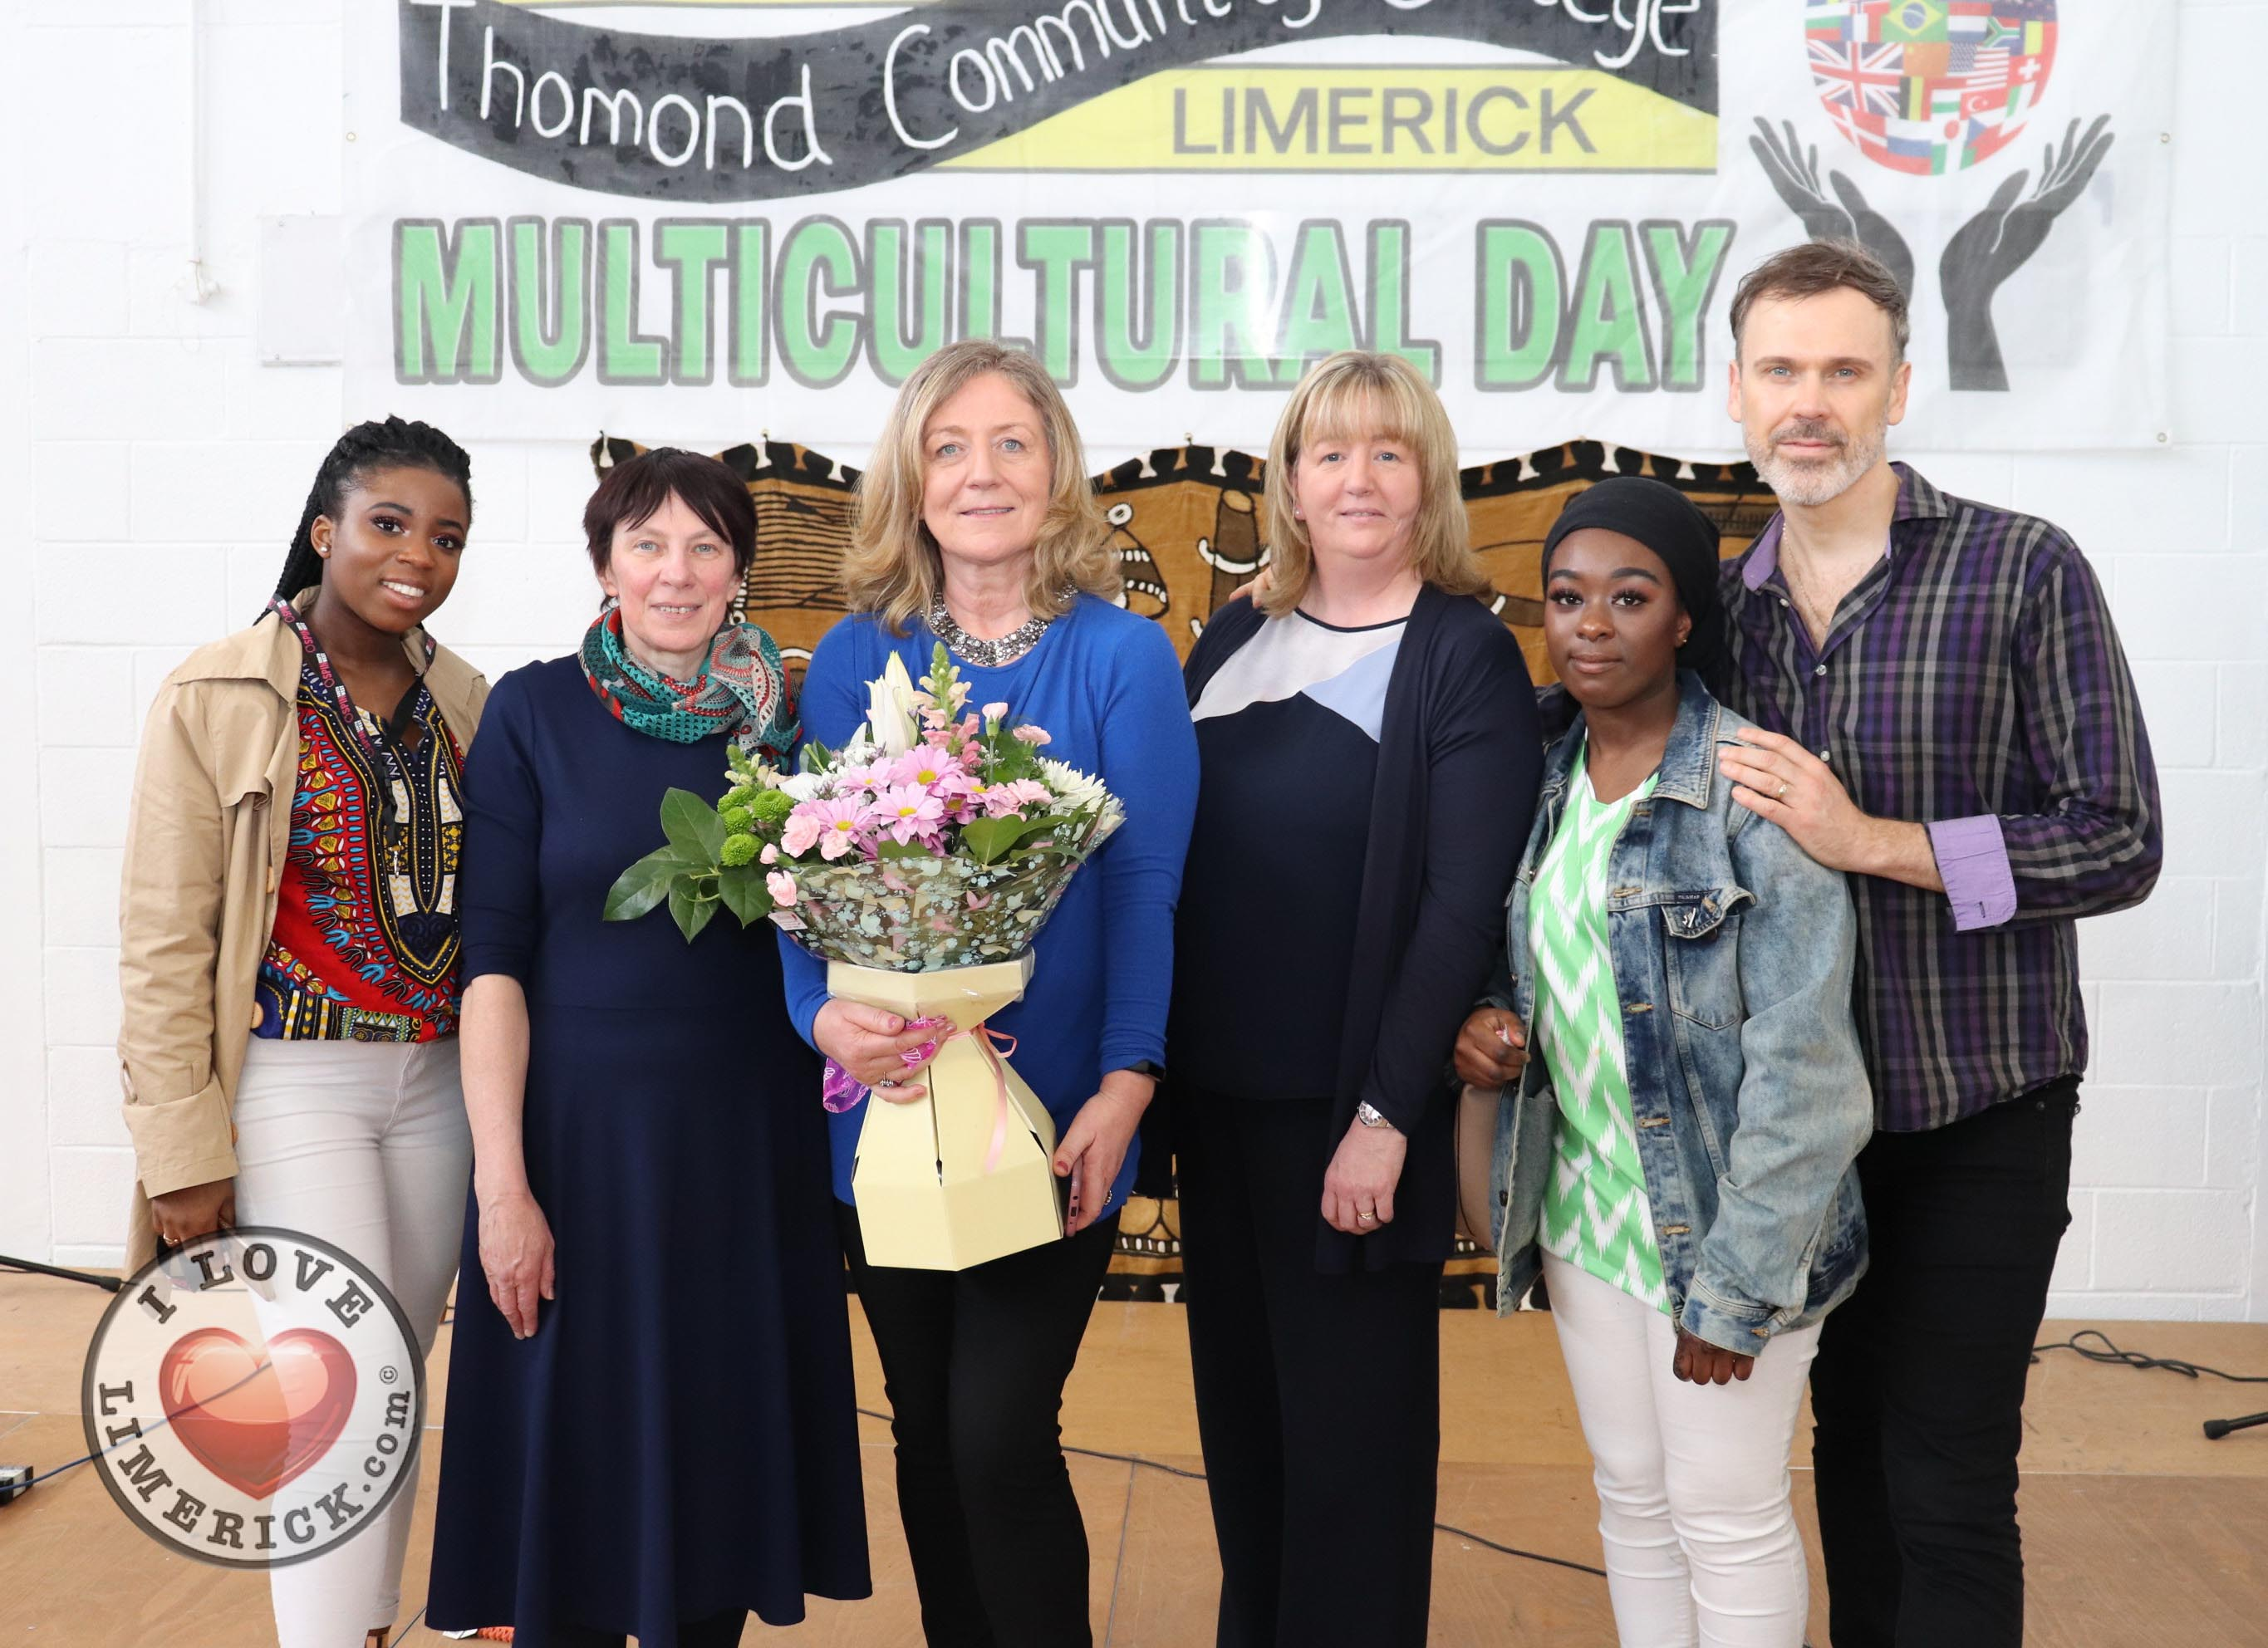 Thomond Community College Multicultural Day 2019